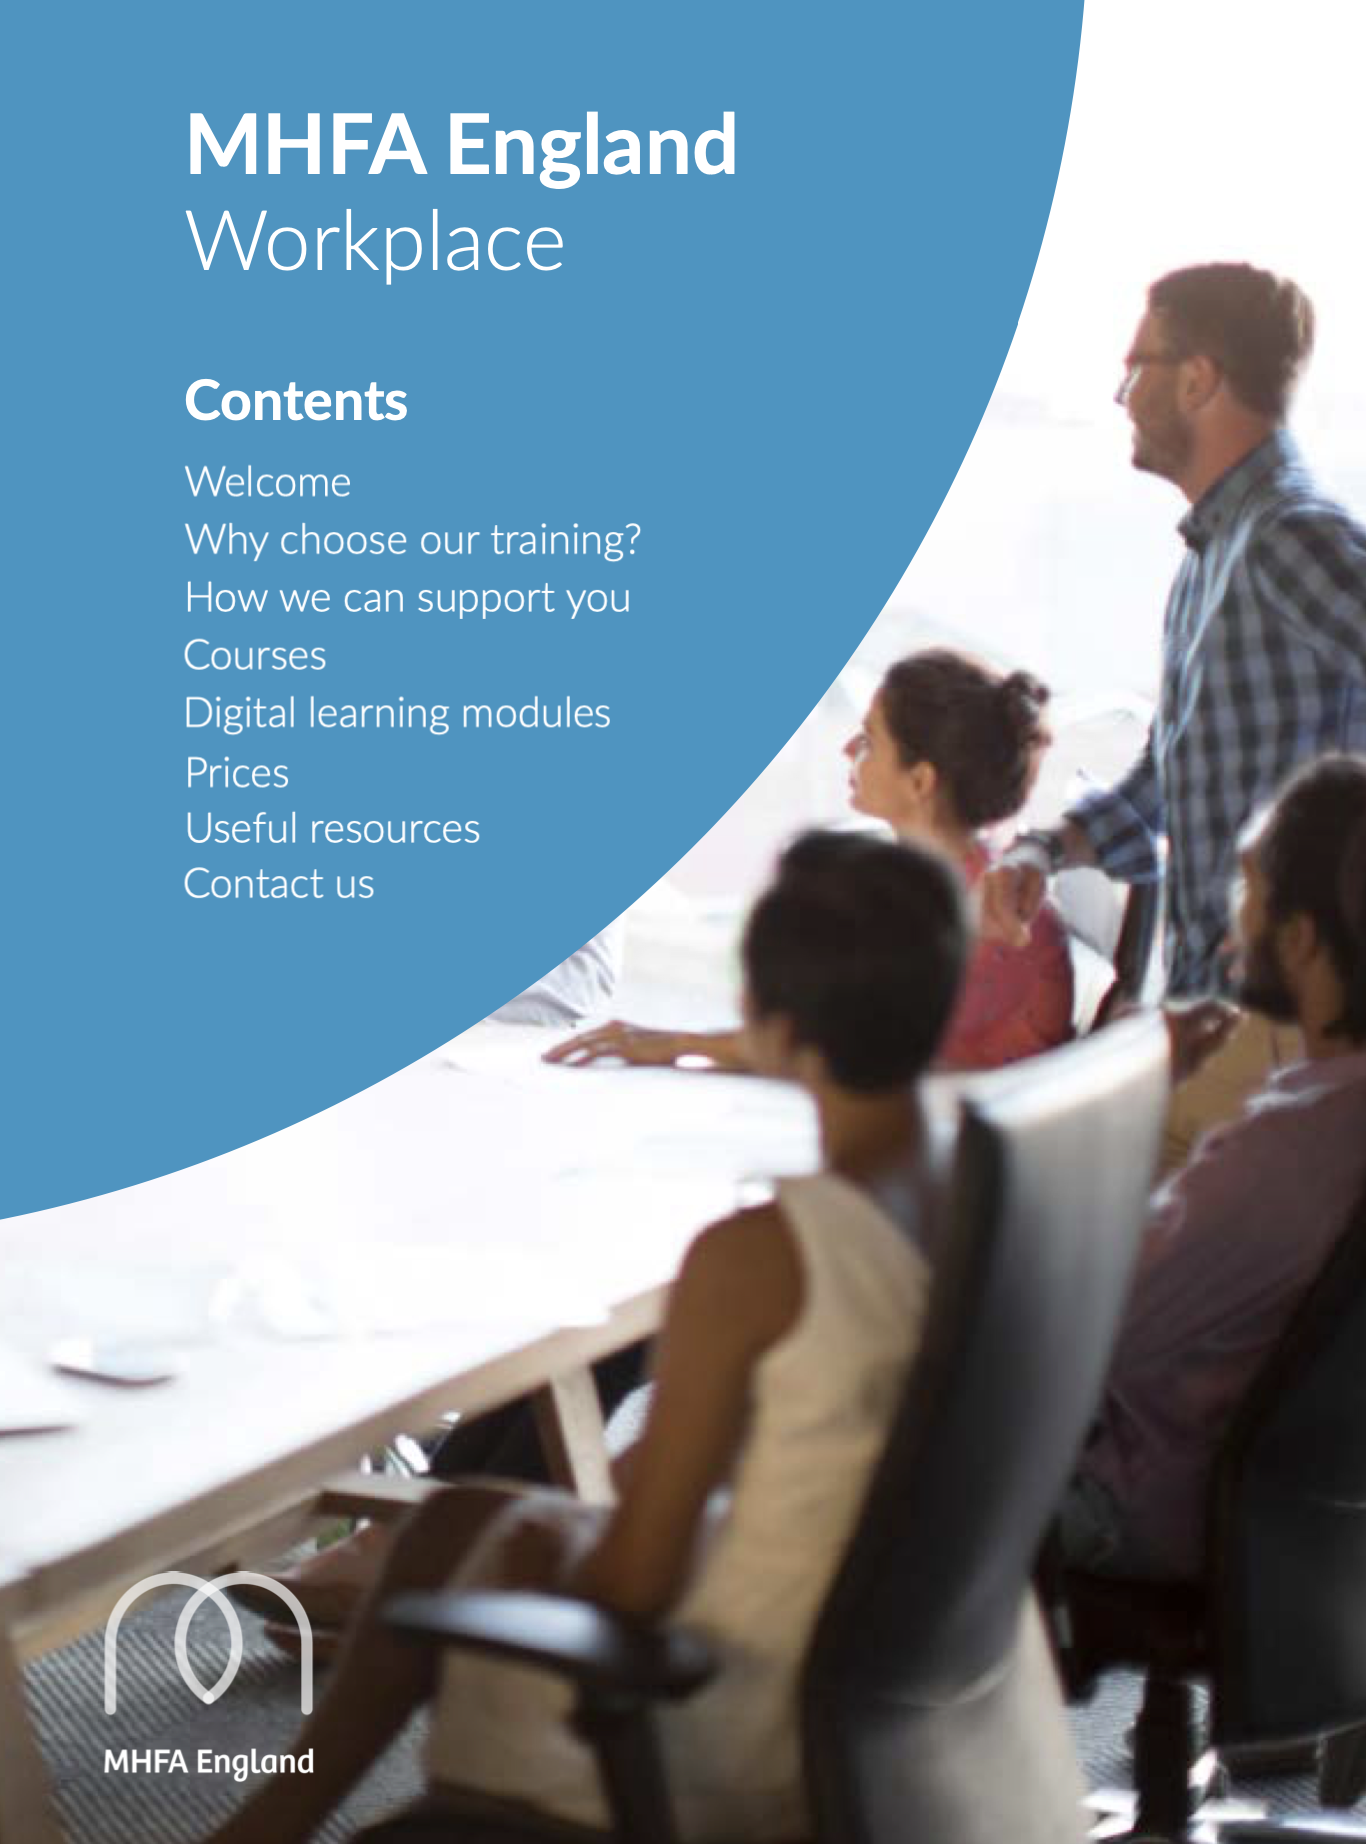 MHFA England Workplace Info Pack